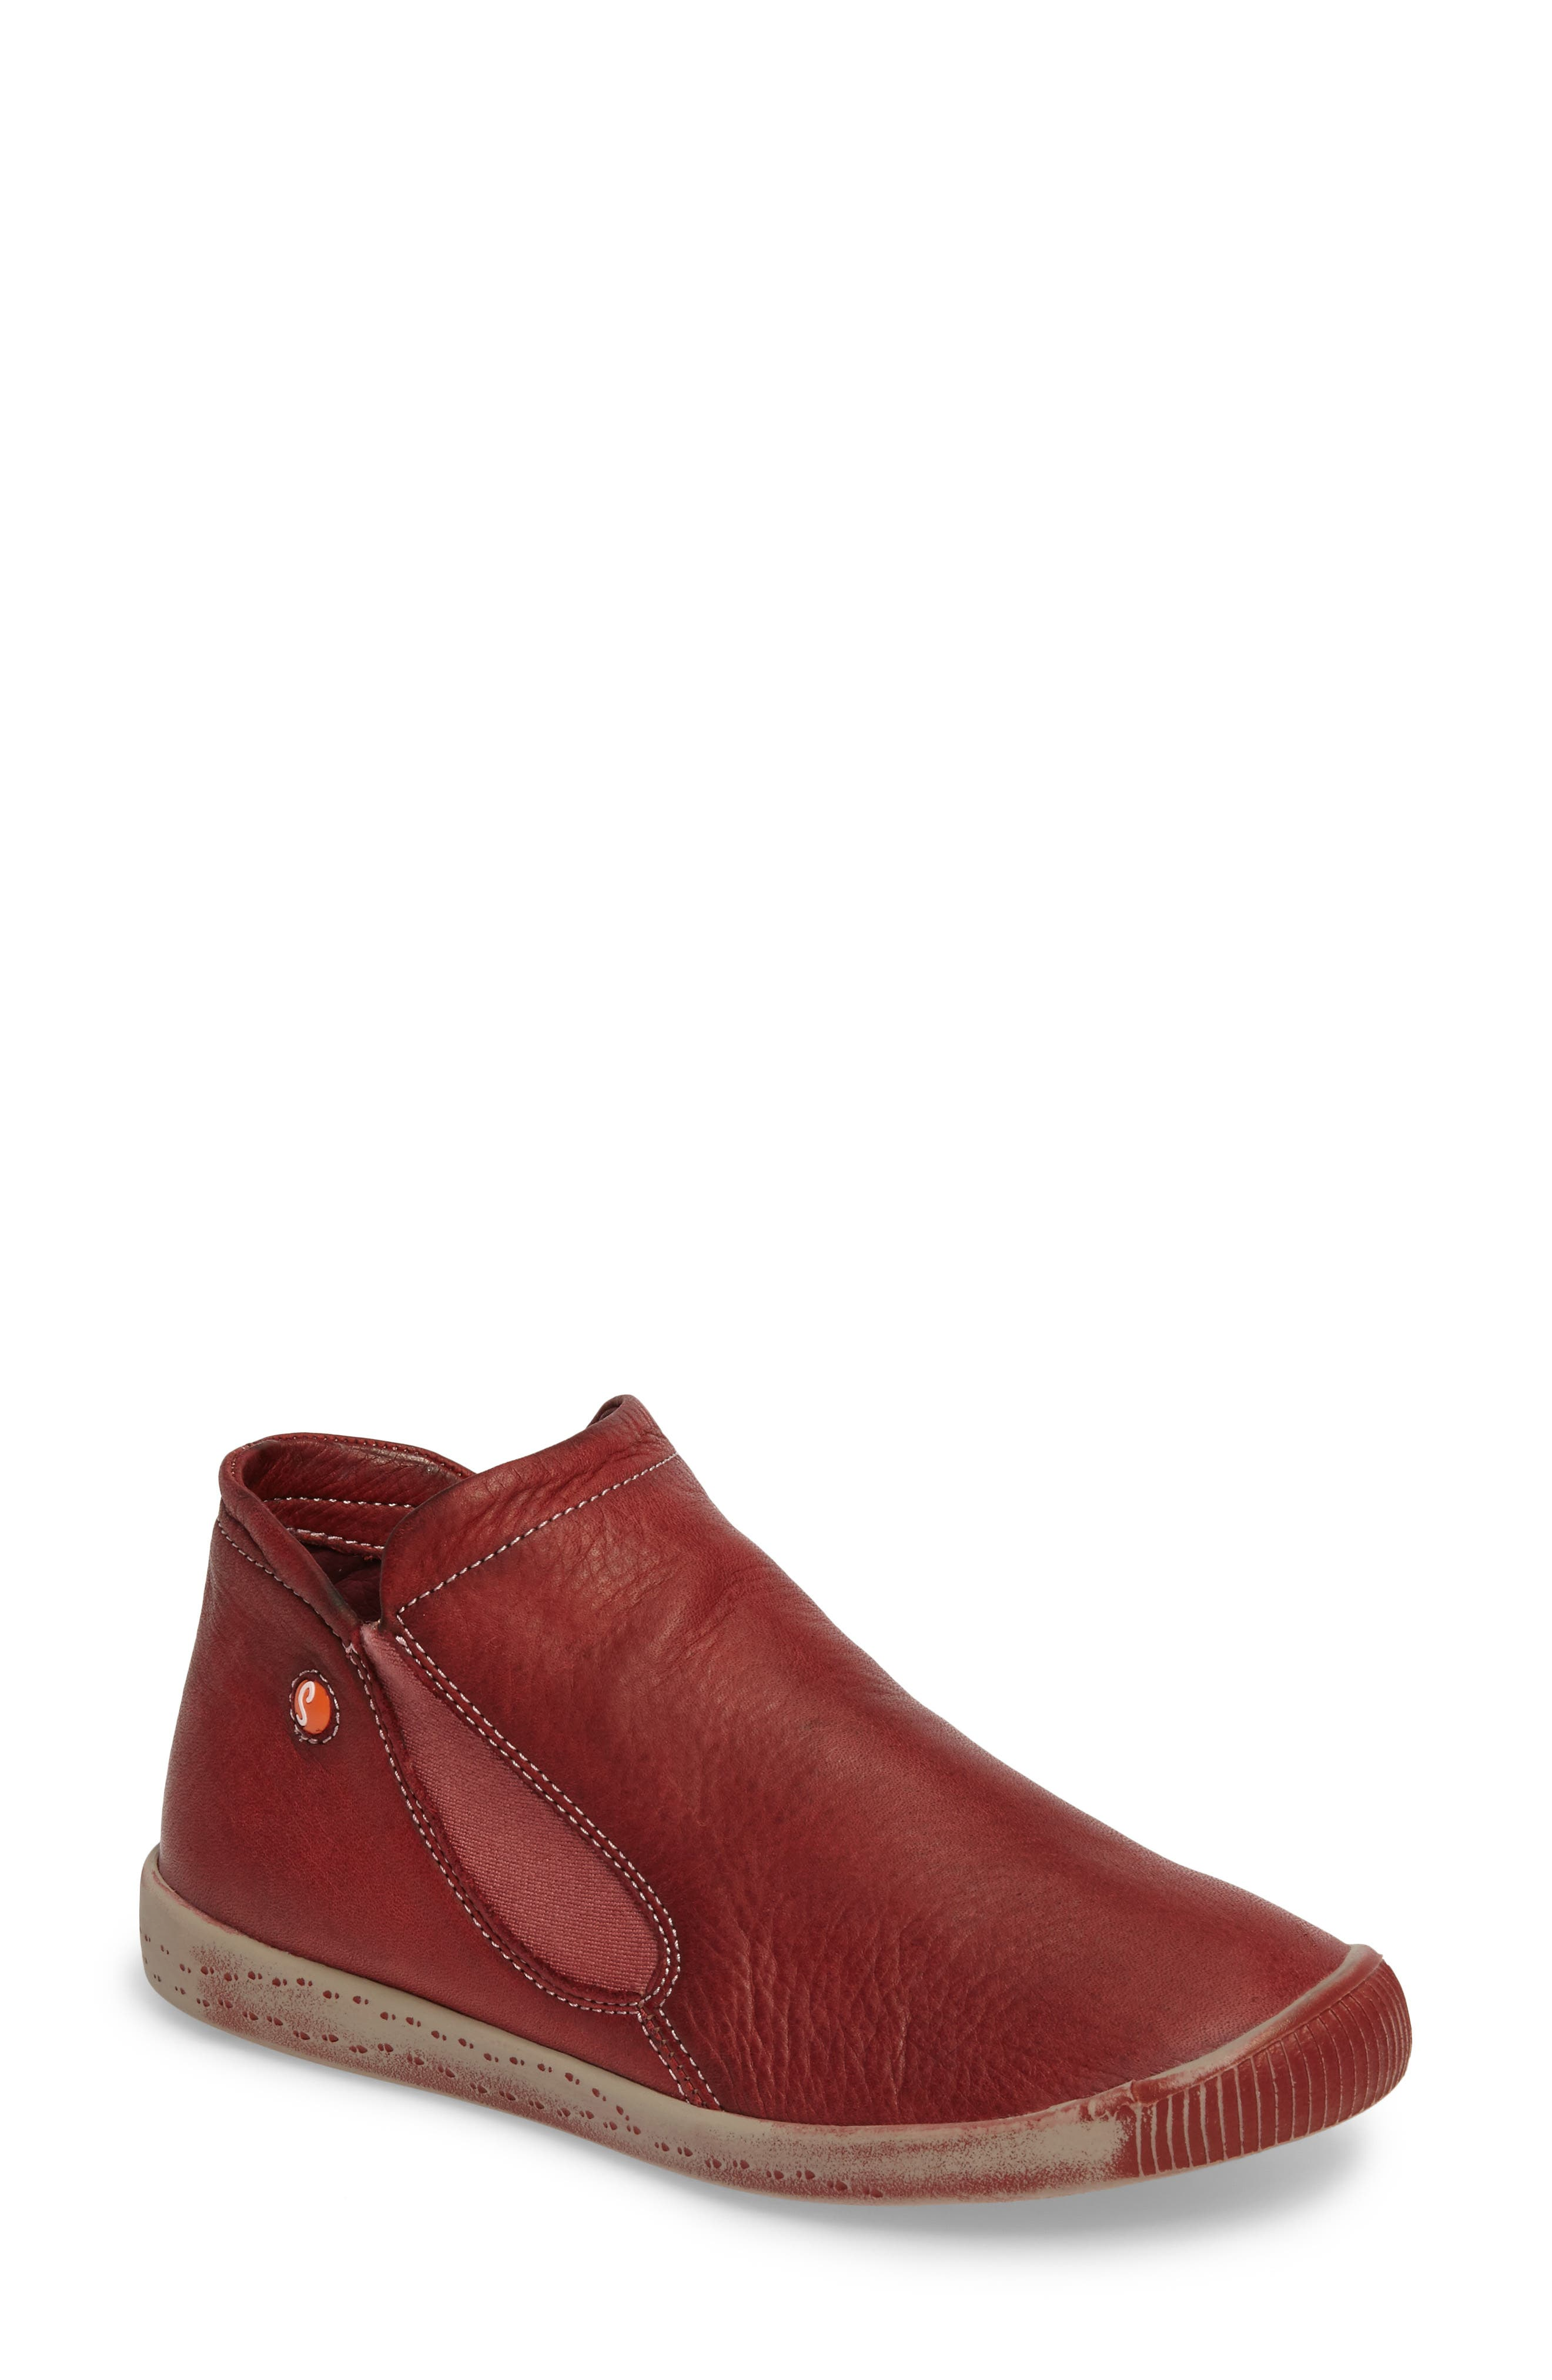 Main Image - Softinos by Fly London Inge Slip-On Sneaker (Women)